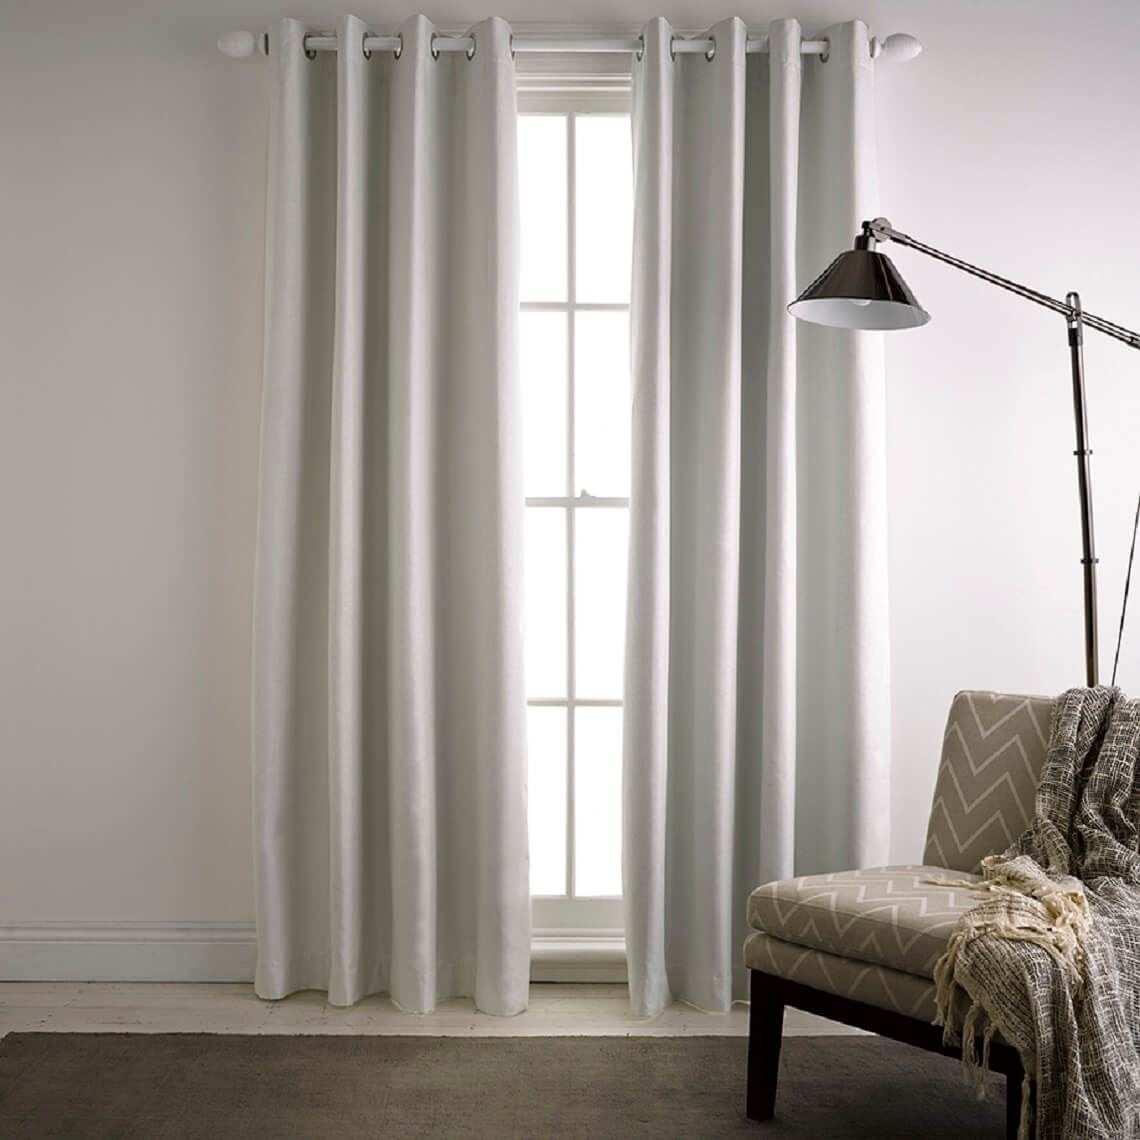 Milton Blockout Eyelet Curtain Size W 140cm x D 1cm x H 230cm in Ivory 100% Polyester/Acrylic Flock Coating/Stainless Steel Freedom by Freedom, a Curtains for sale on Style Sourcebook